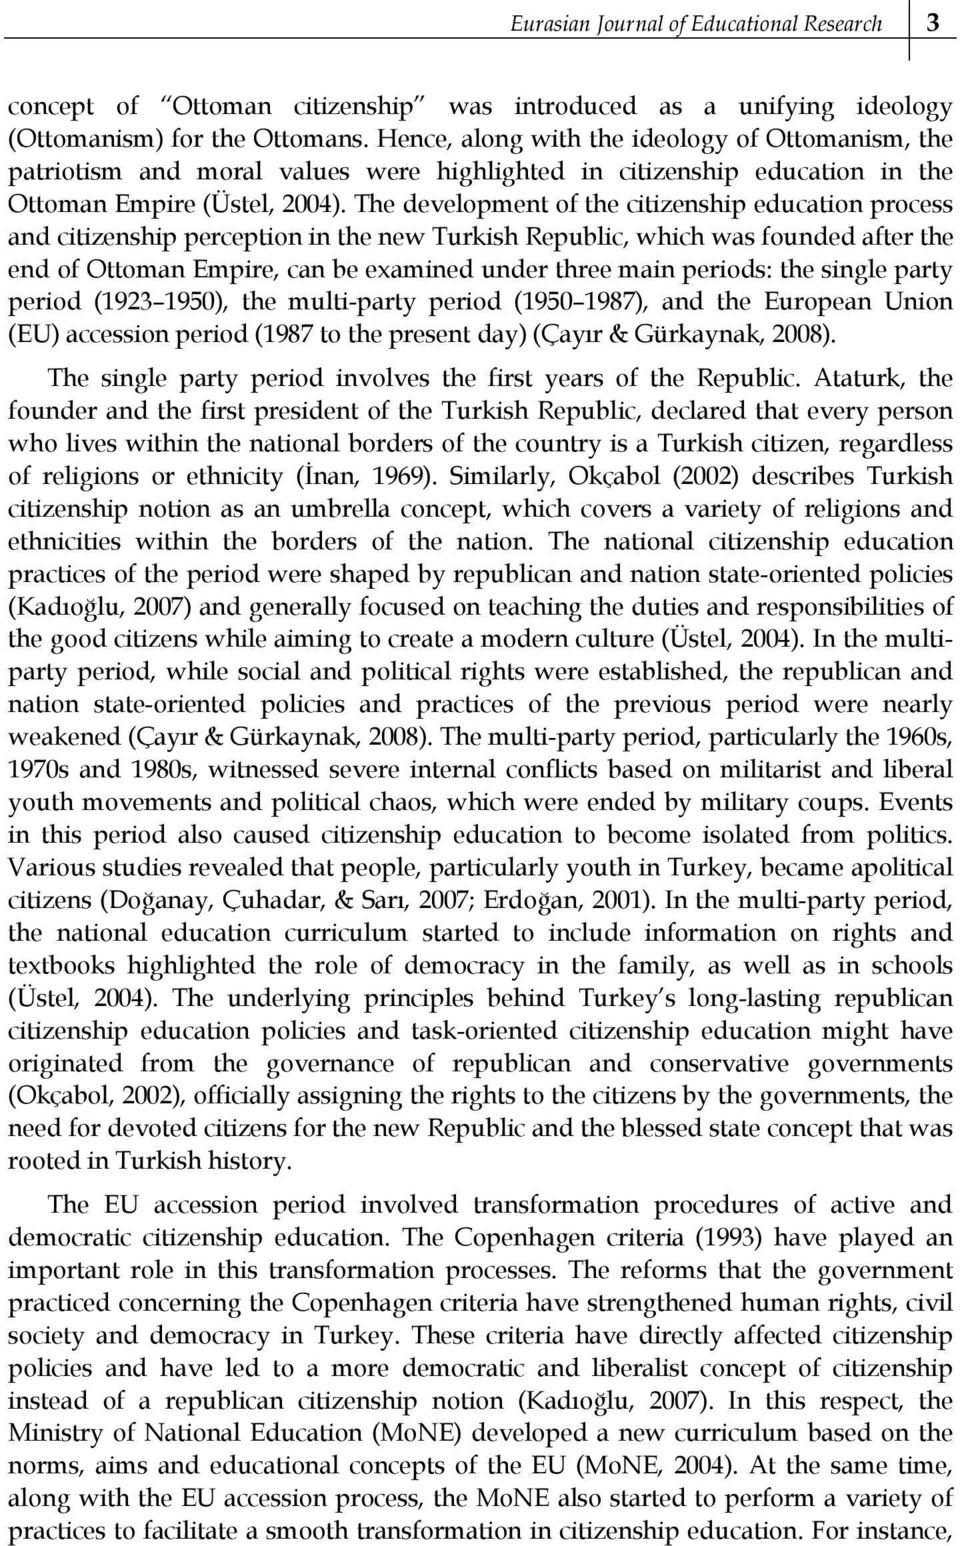 The development of the citizenship education process and citizenship perception in the new Turkish Republic, which was founded after the end of Ottoman Empire, can be examined under three main